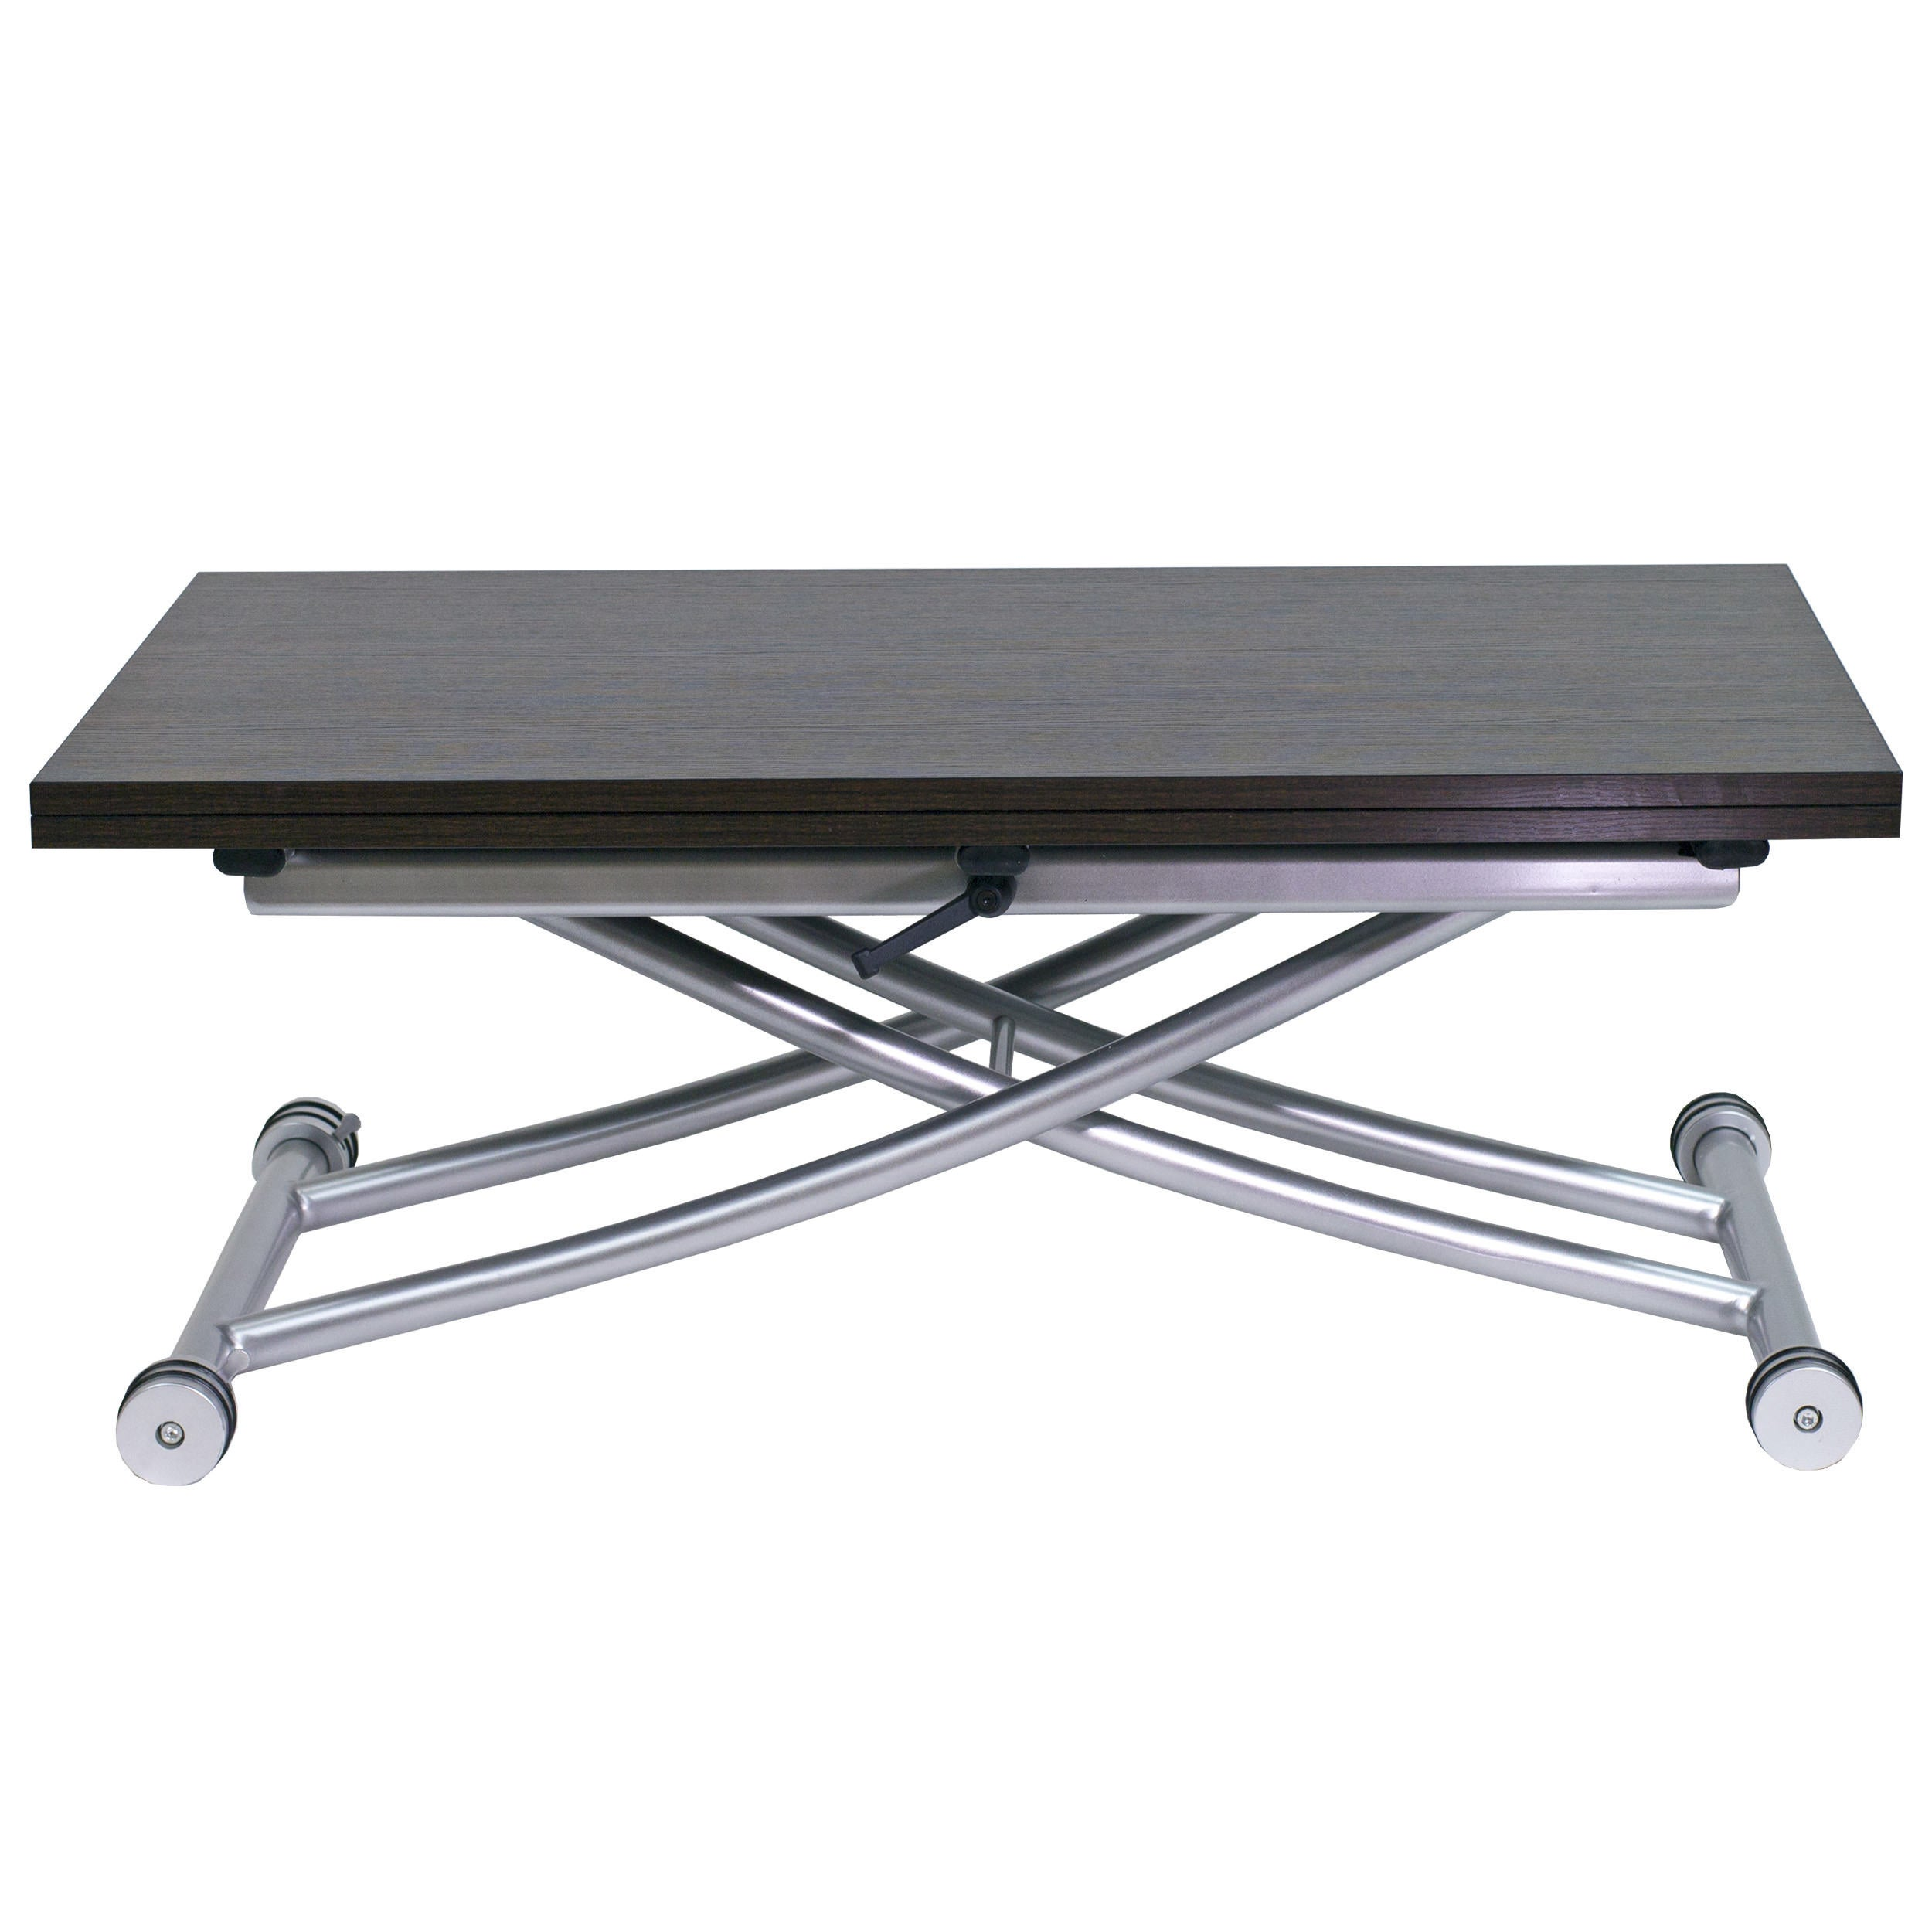 Co 2219 Espresso Finish Stainless Steel And Mdf Transforming X Coffee 4 Seat Dining Table Silver Overstock 12068541